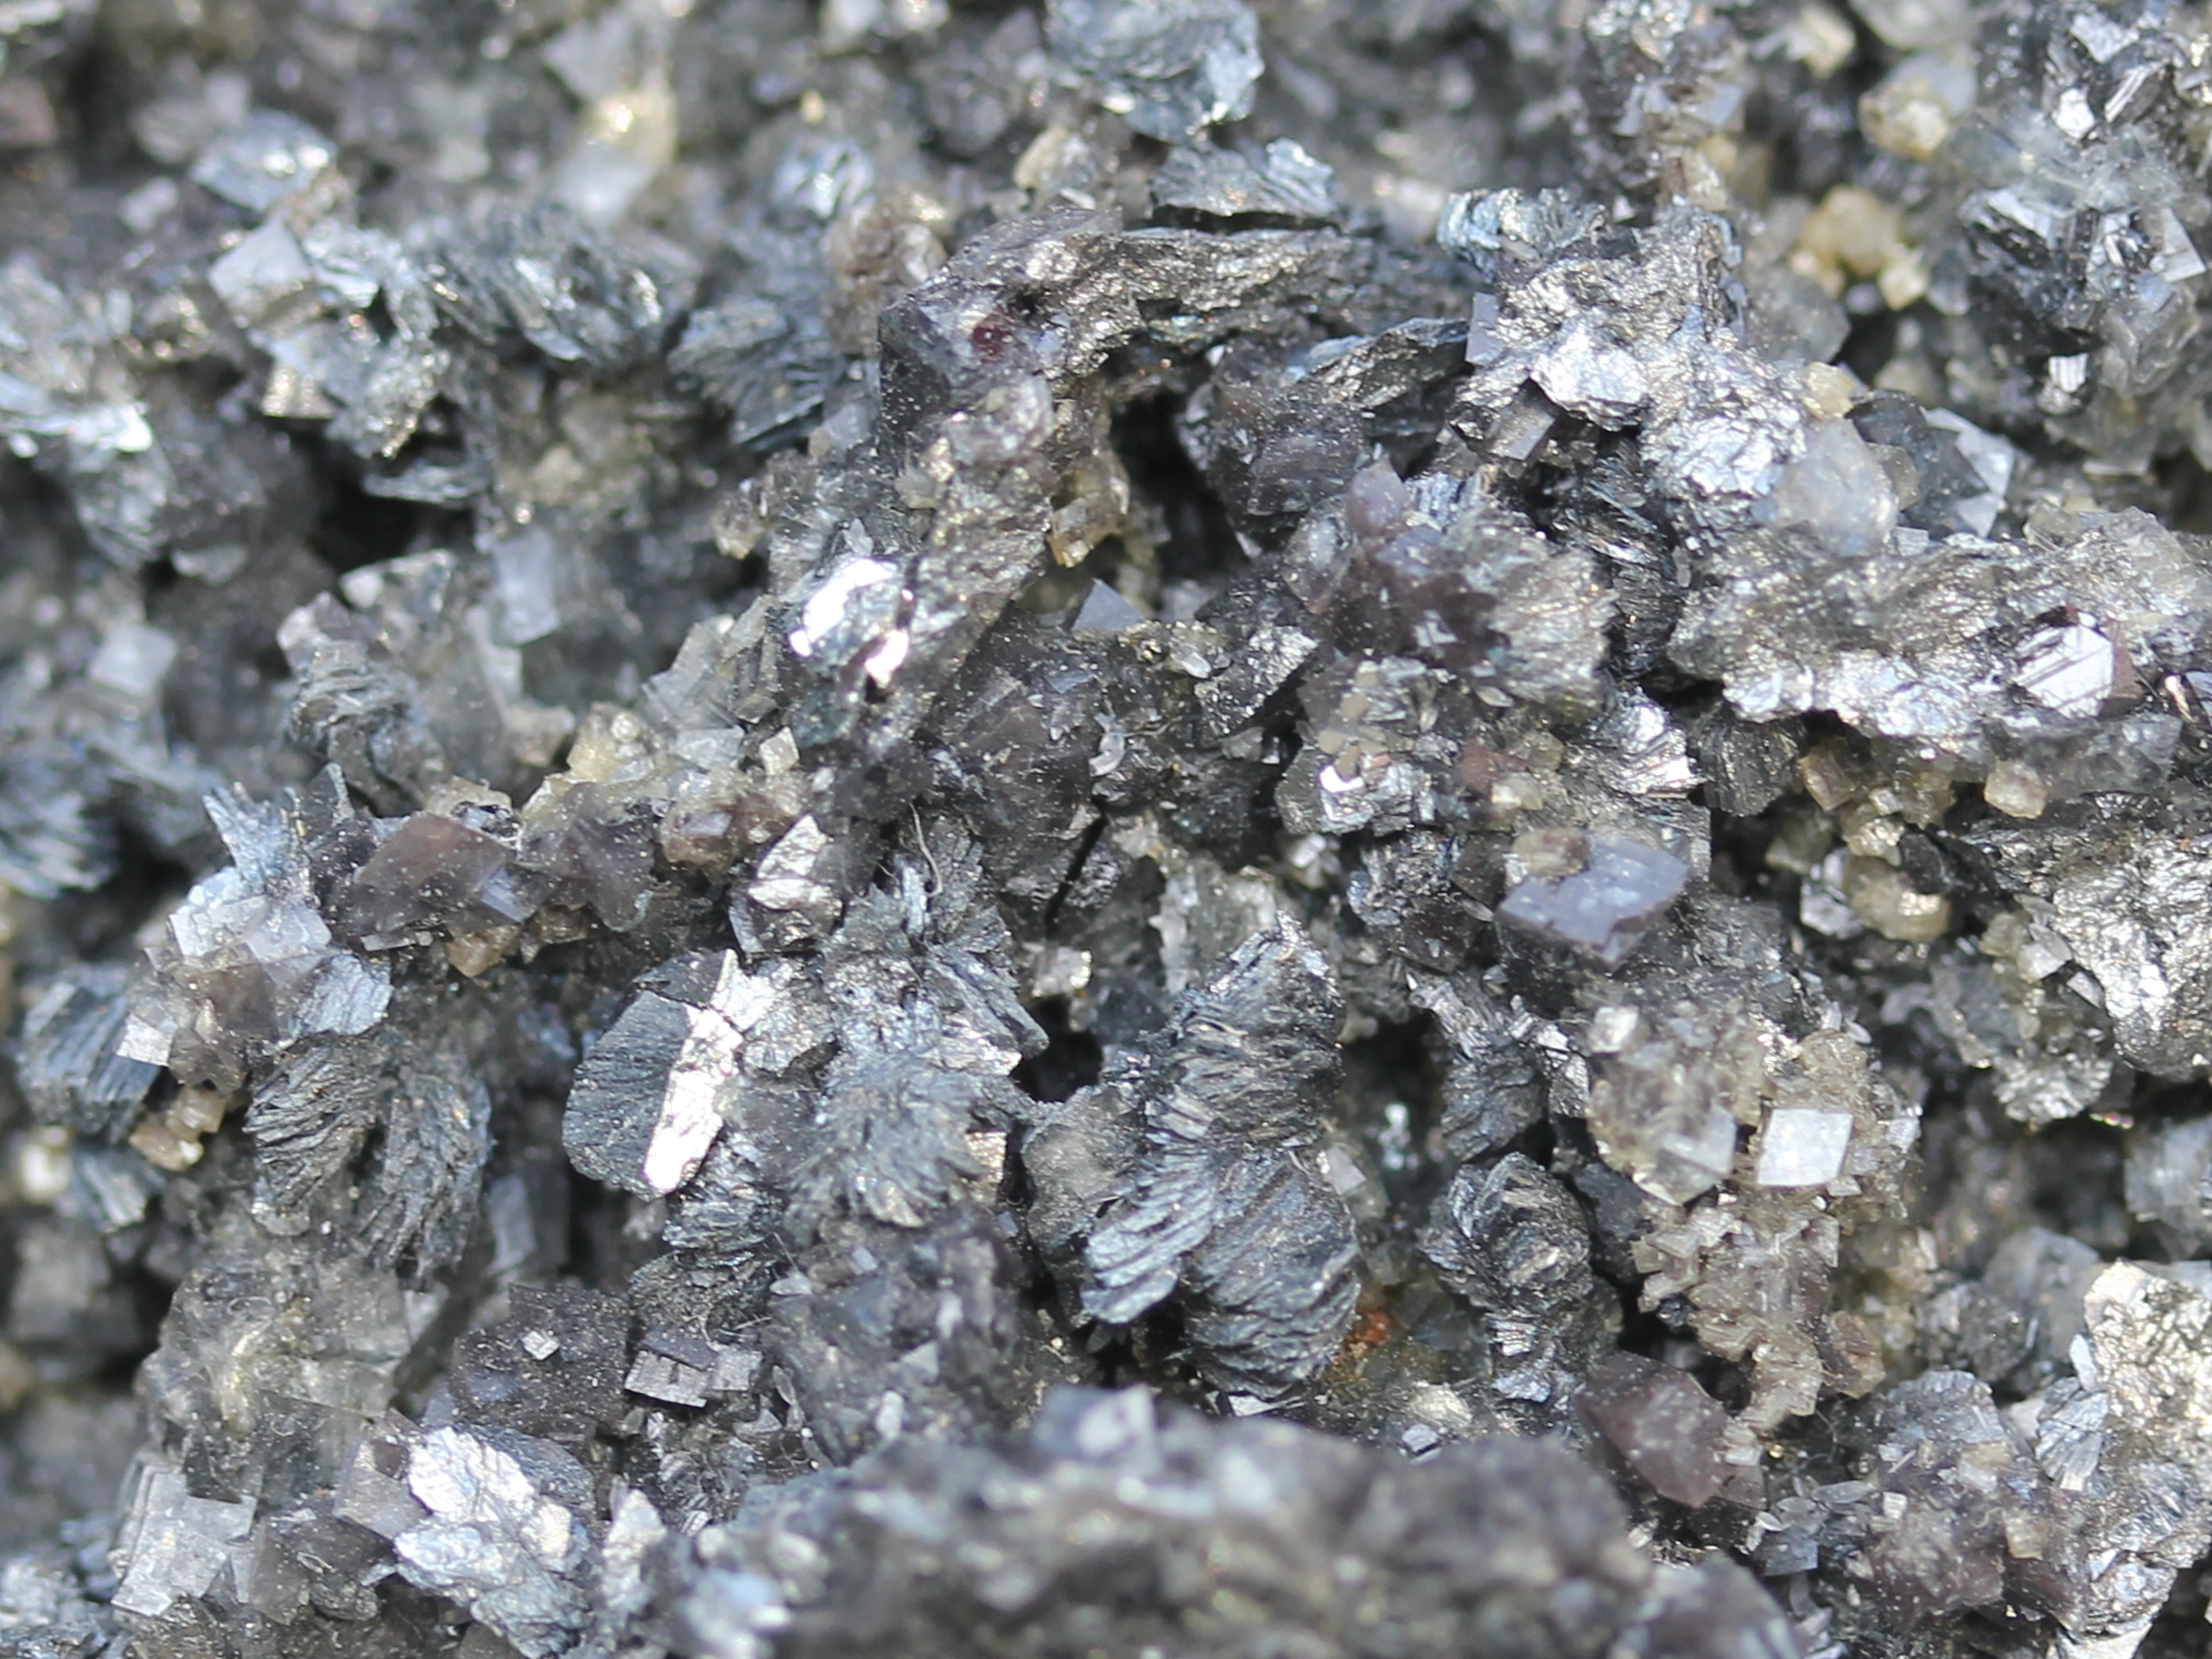 Semseyite and a combo of other sulfides.